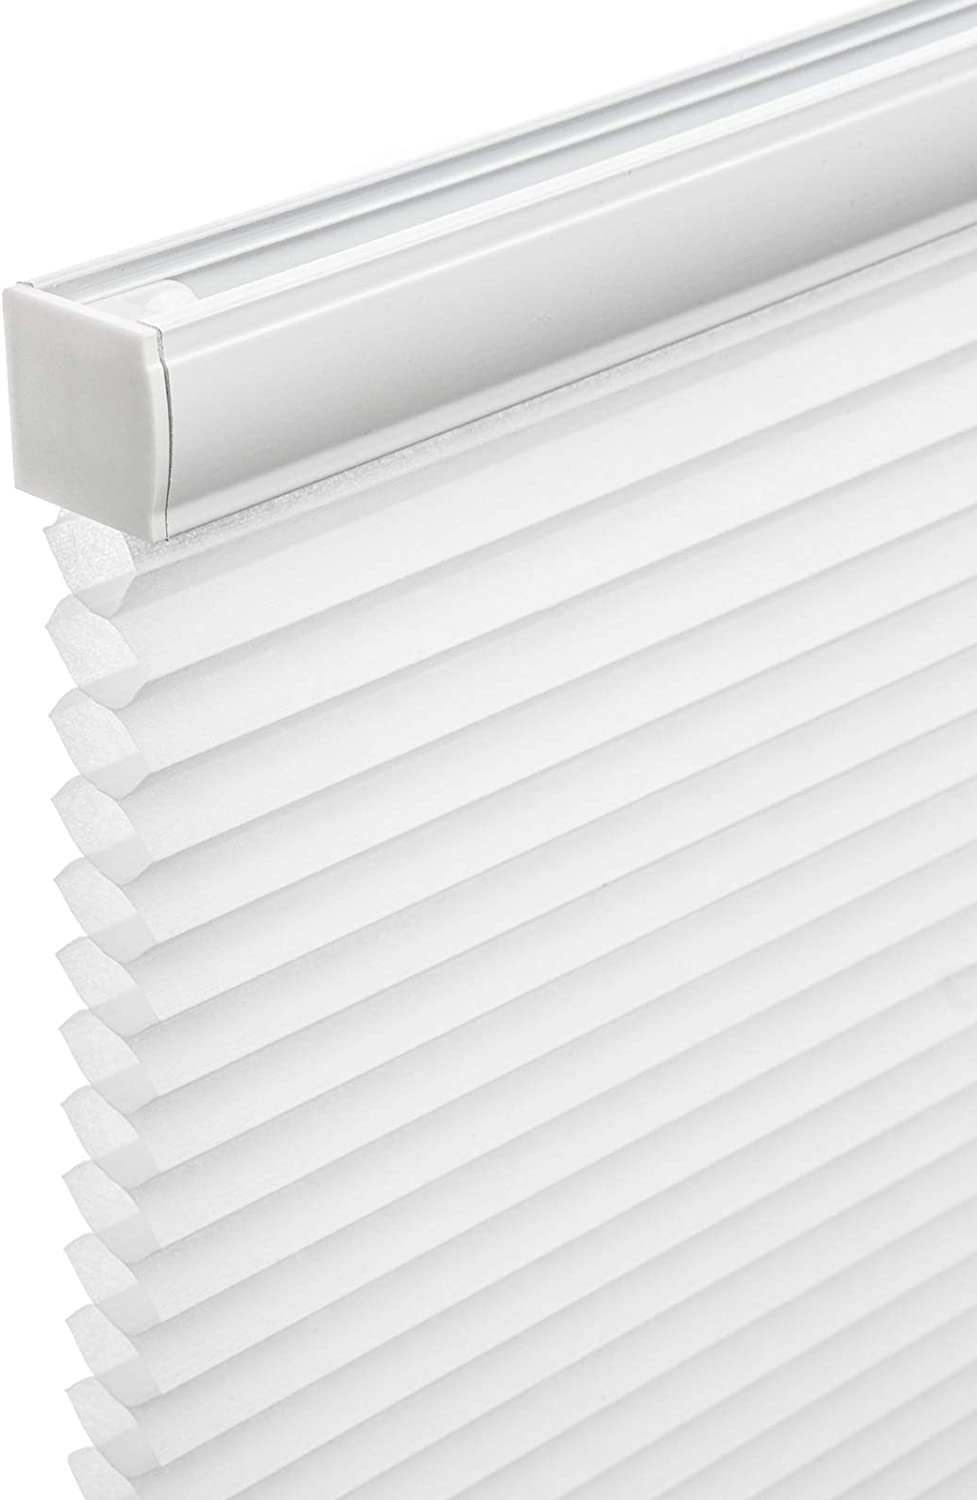 """Changshade Cordless Cellular Window Shades 1"""" Honeycomb UV Protection Shades with Valance Bottom Up Light Filtering Windows Blinds for Bedroom Kitchen Home Decor Glass Doors 44""""W x 72""""H, CEL44WT72B"""